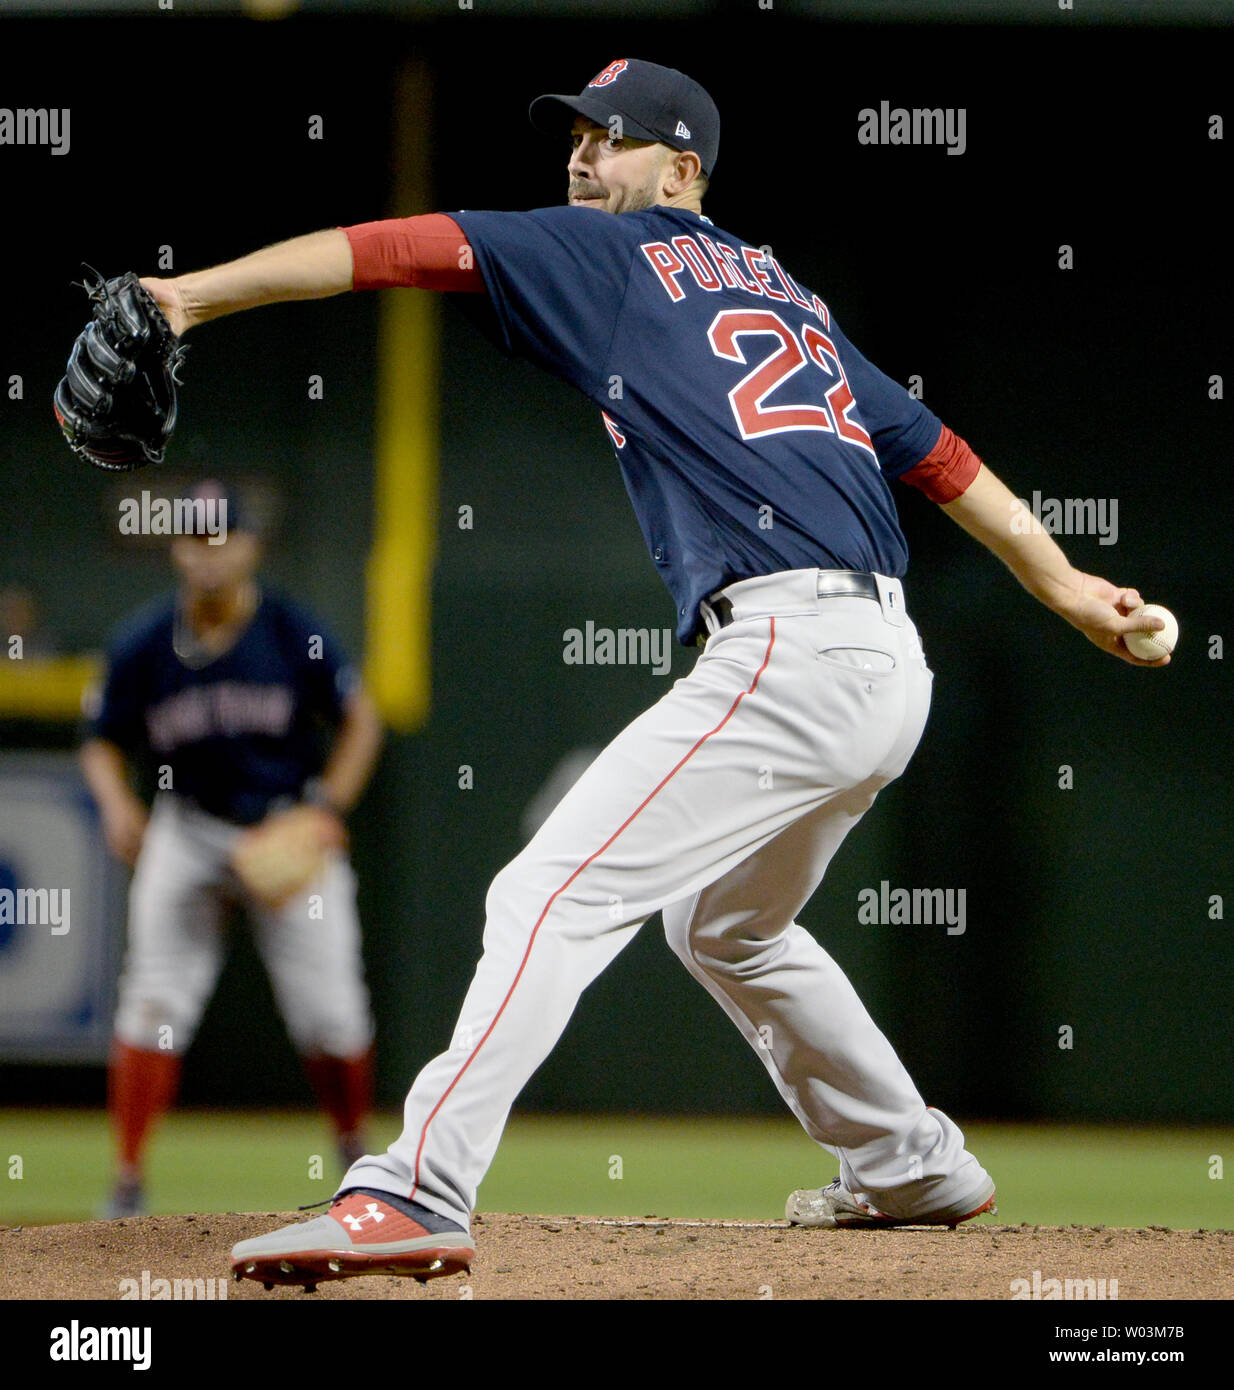 Boston Red Sox' starting pitcher Rick Porcello delivers a pitch to an Arizona Diamondbacks batter in the fourth inning at Chase Field in Phoenix, Arizona on April 5, 2019.  The Diamondbacks defeated the Red Sox 15-8.  Photo by Art Foxall/UPI Stock Photo